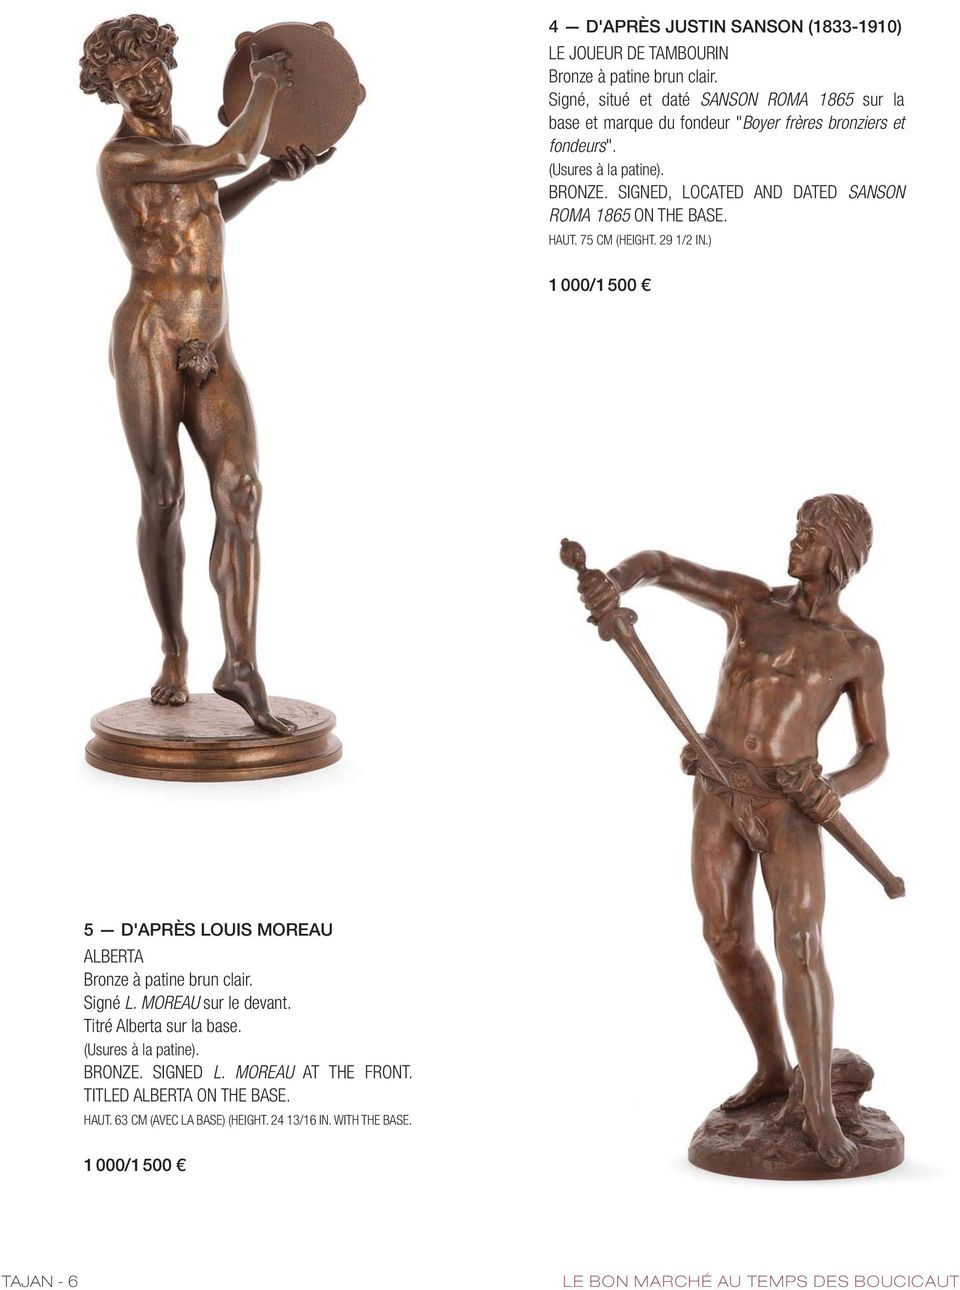 SIGNED, LOCATED AND DATED SANSON ROMA 1865 ON THE BASE. HAUT. 75 CM (HEIGHT. 29 1/2 IN.) 1 000/1 500 5 D'APRÈS LOUIS MOREAU ALBERTA Bronze à patine brun clair.